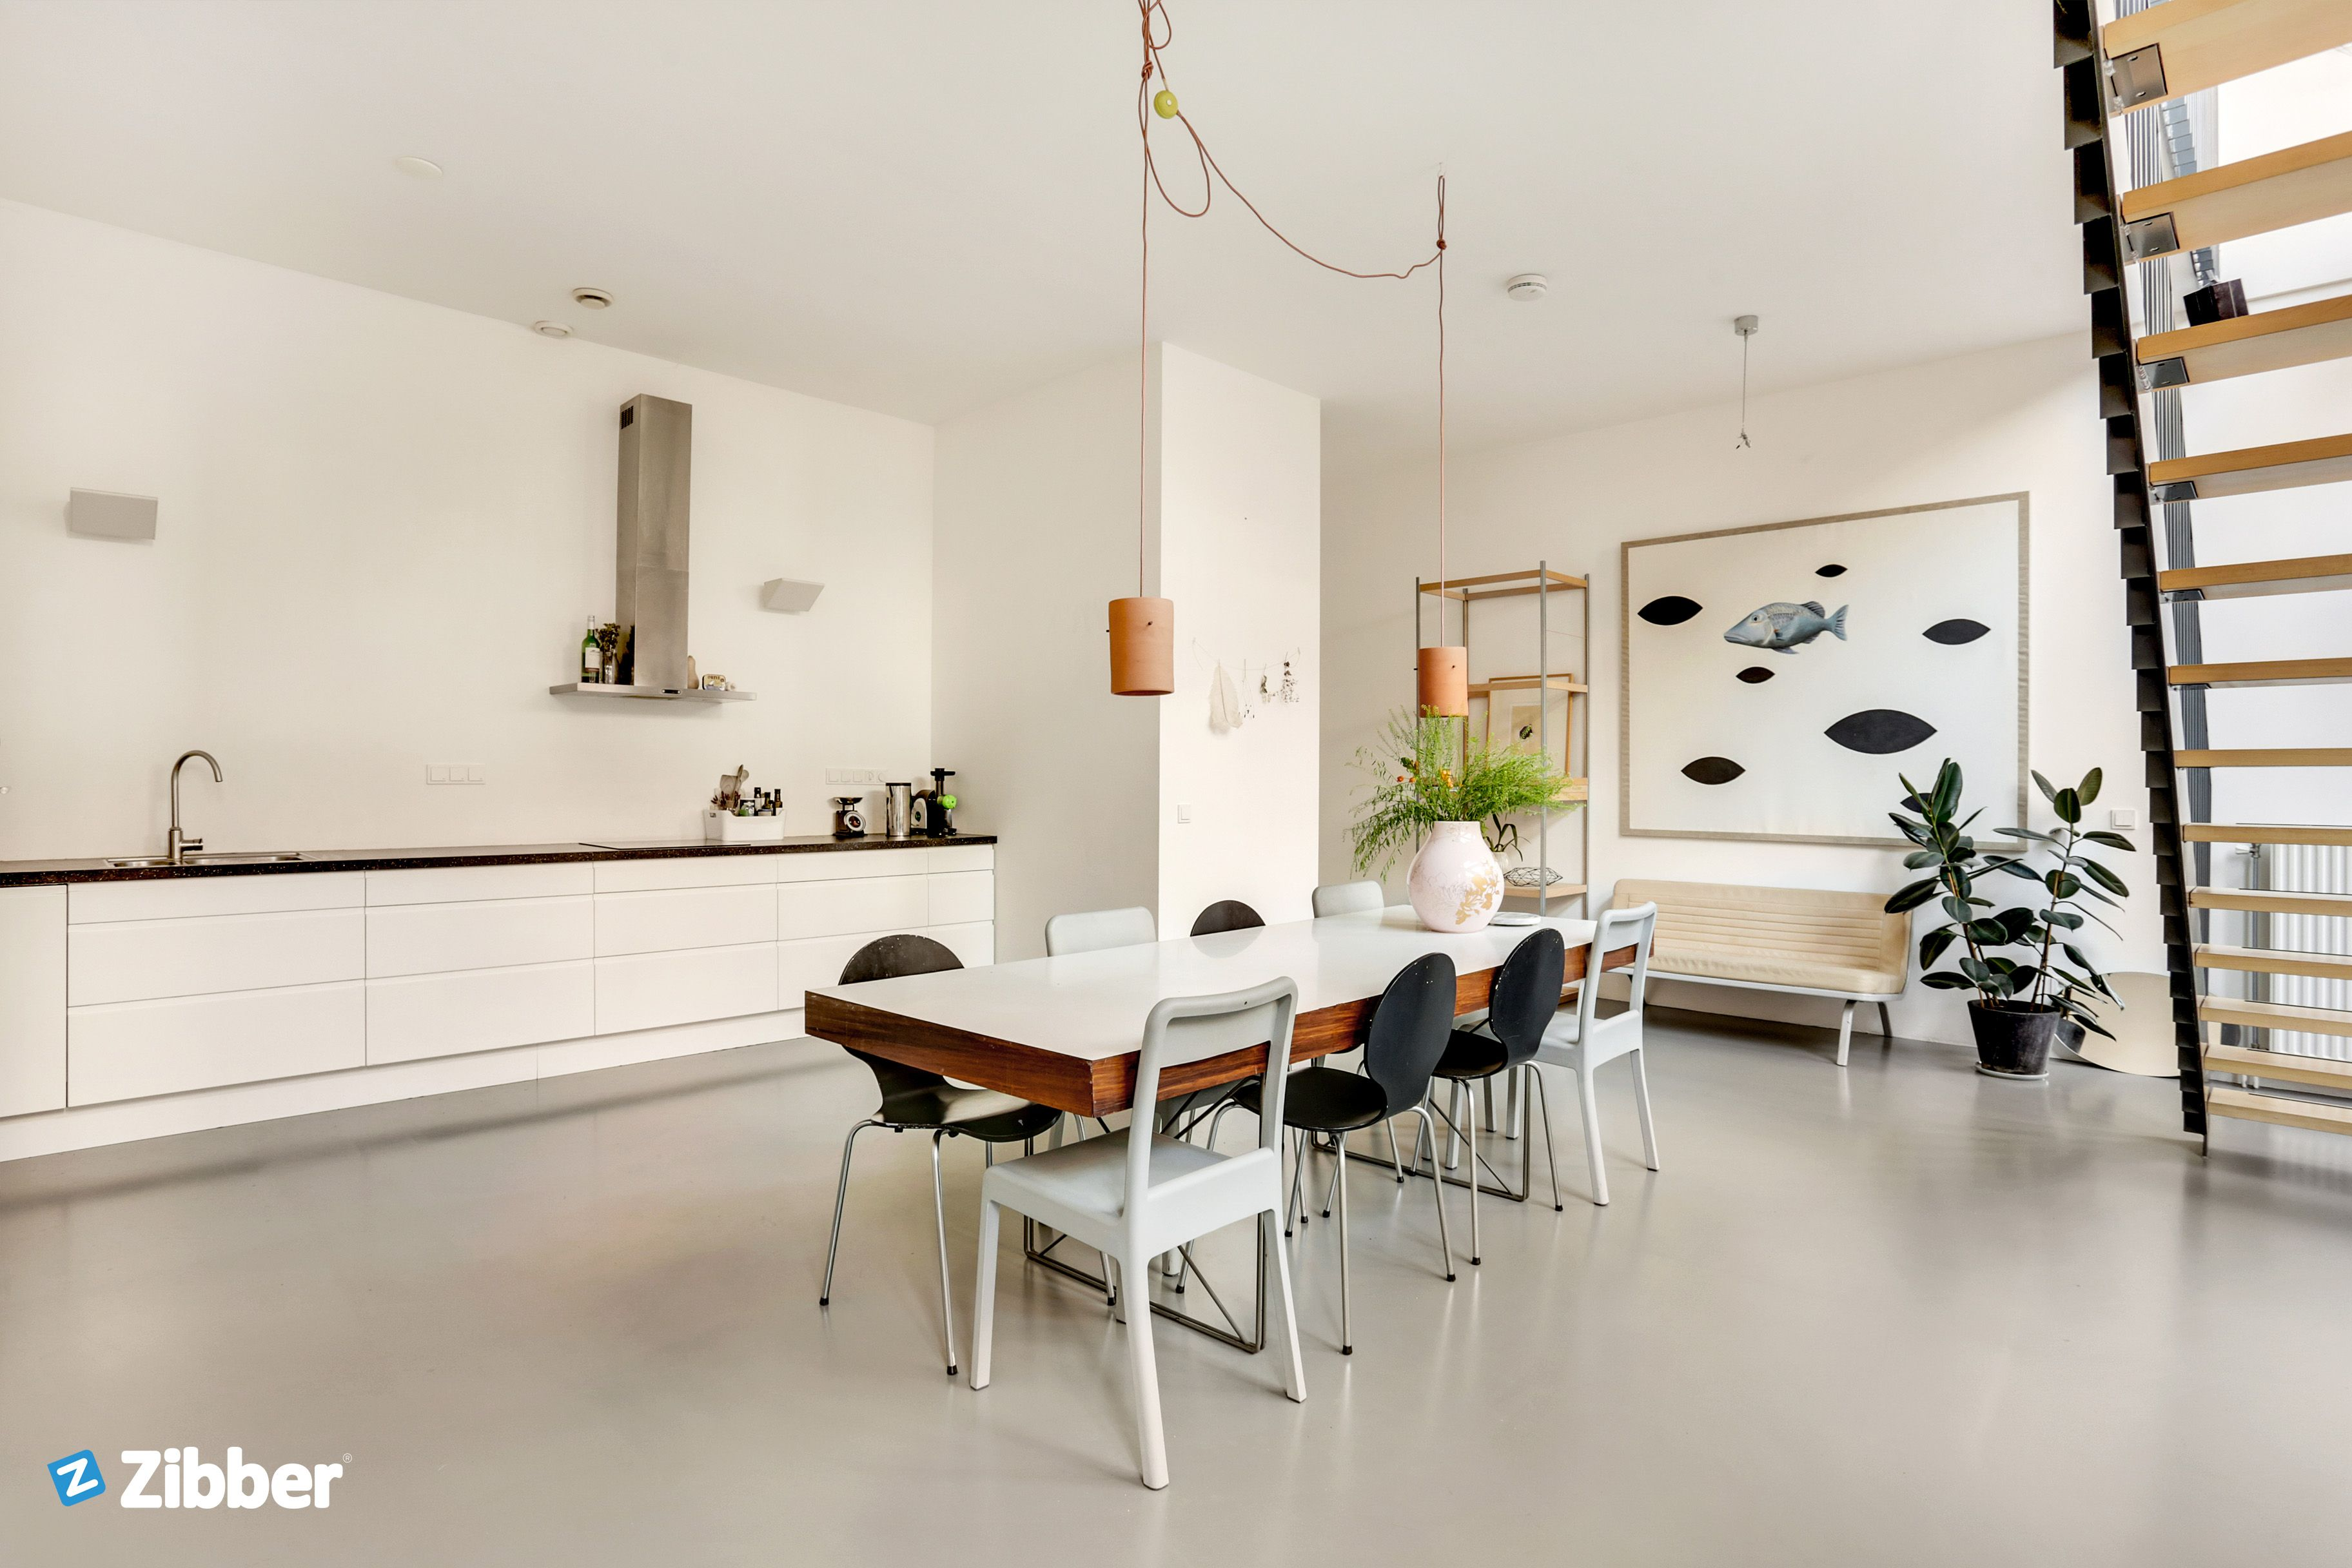 Gorgeous white modern kitchen mixed with lots of inspiration and